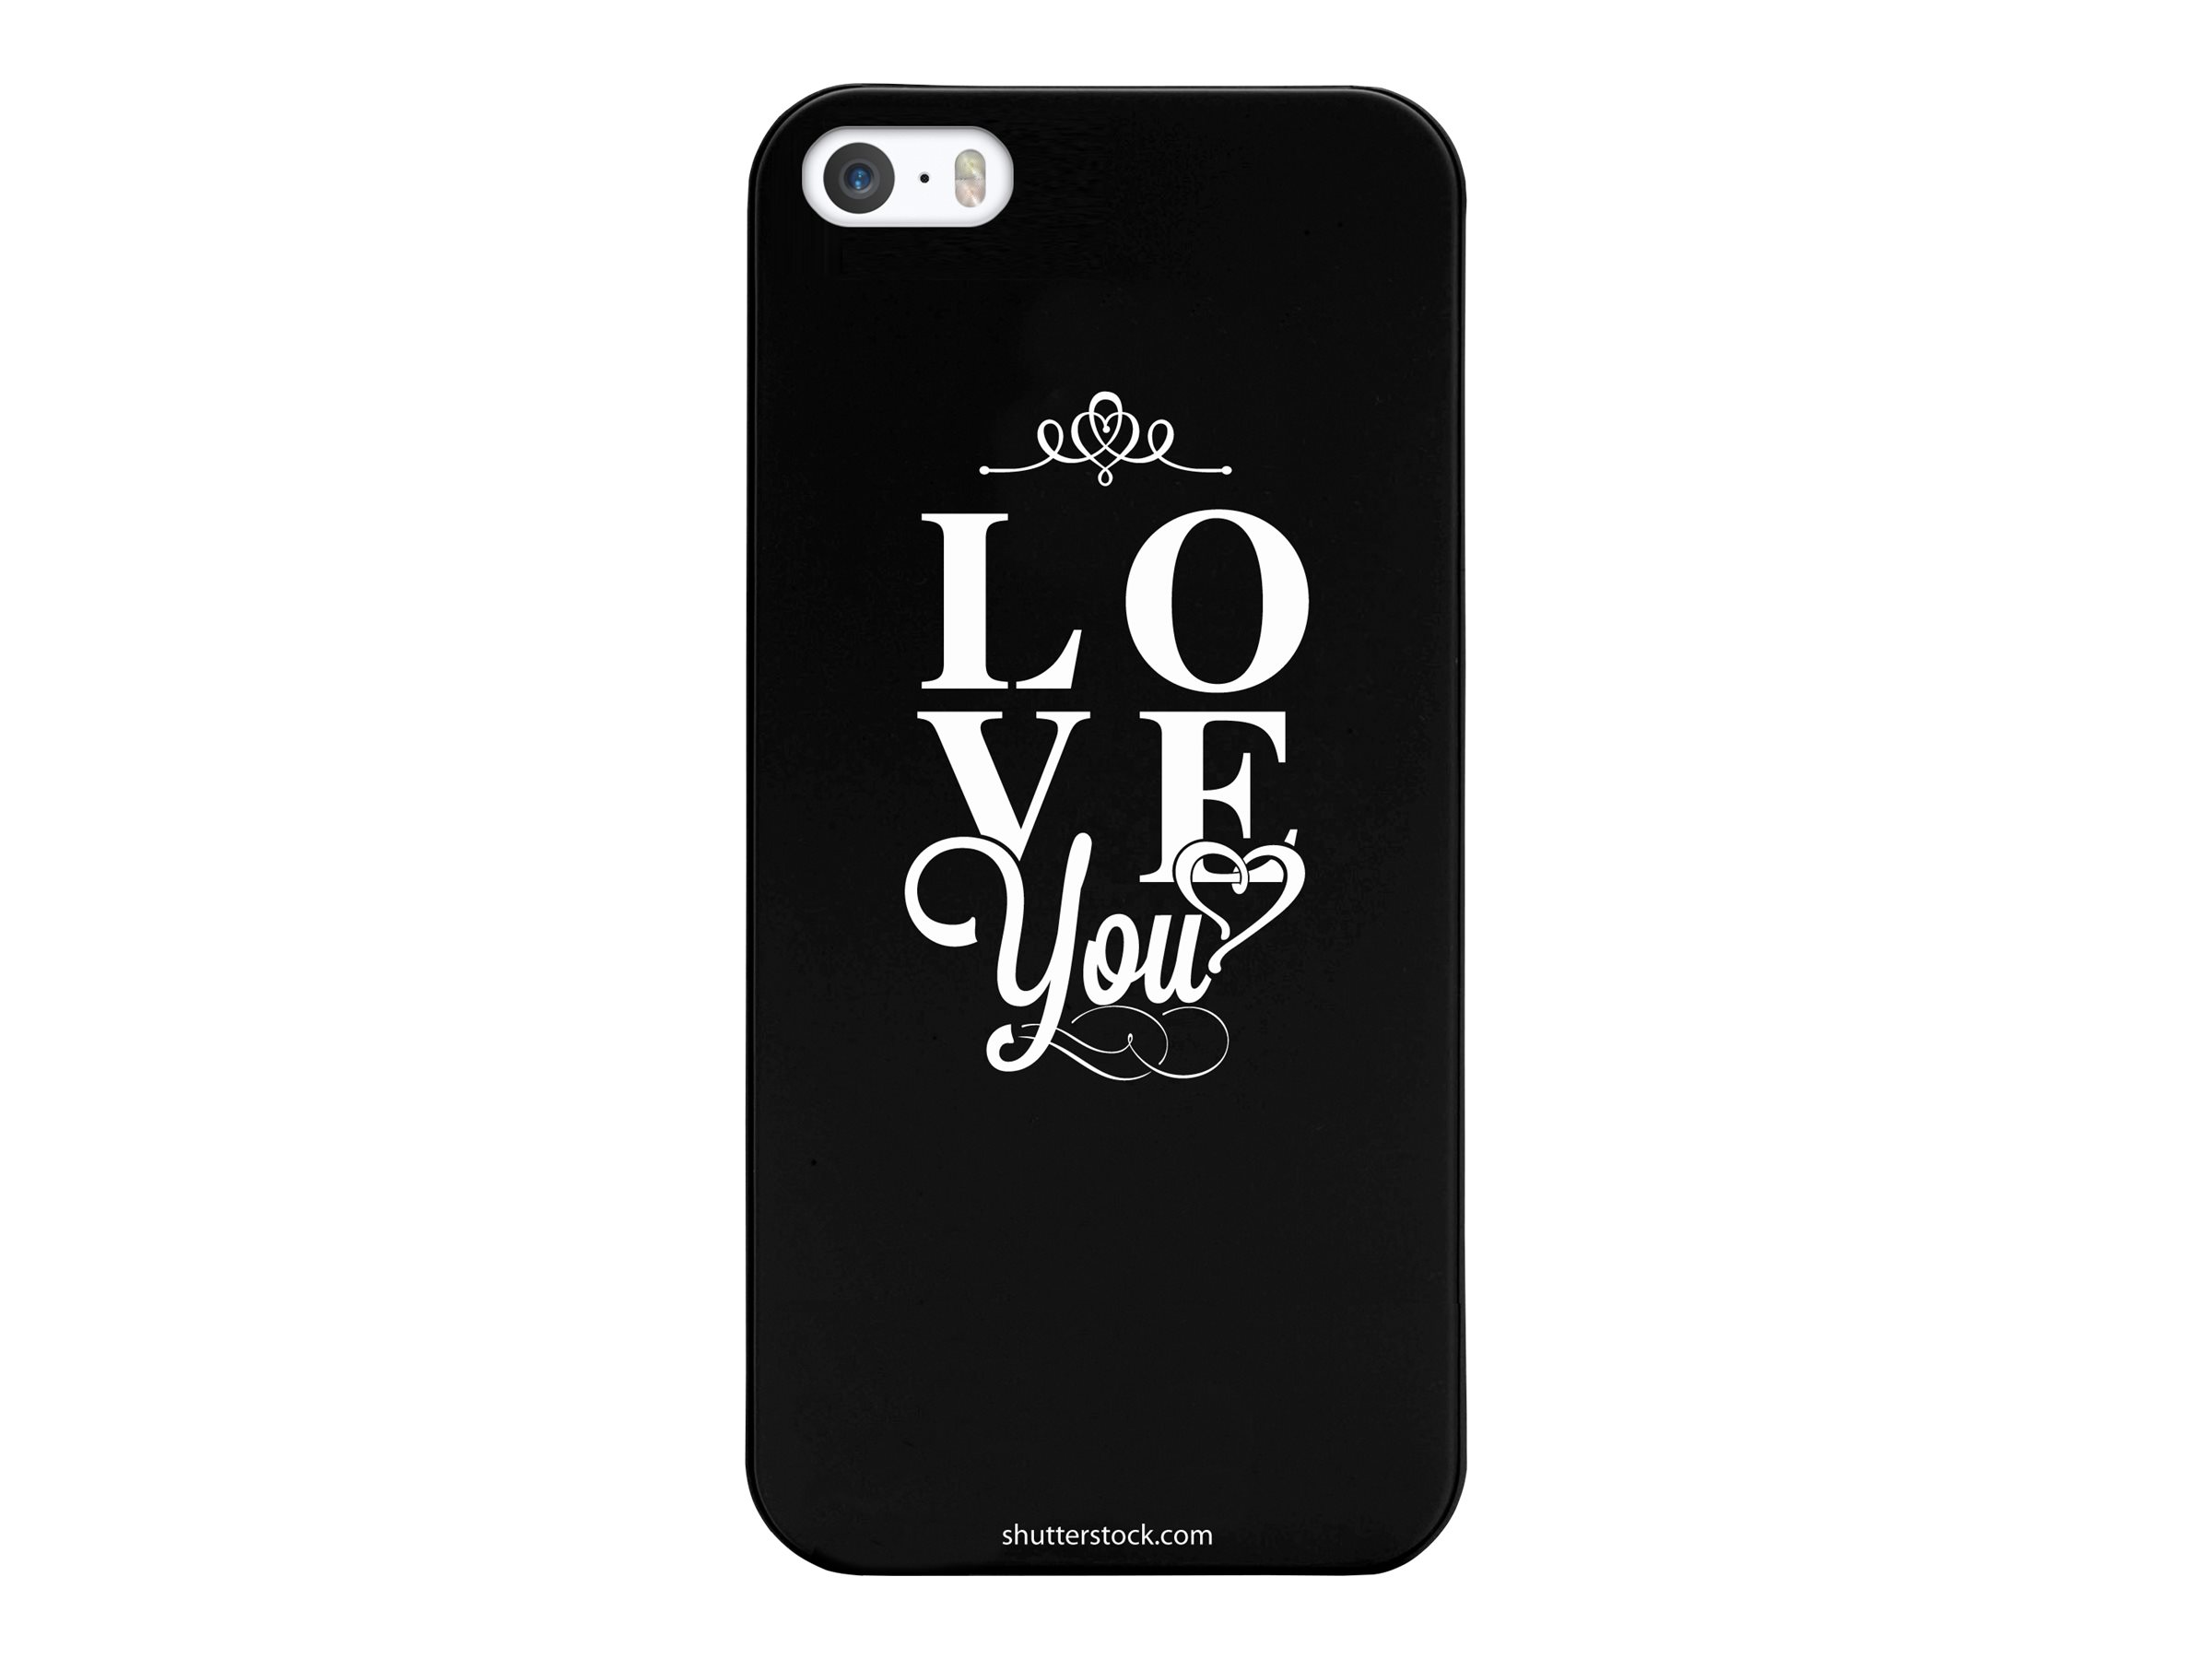 Muvit love you - Coque de protection pour iPhone 5, 5s - noir, blanc